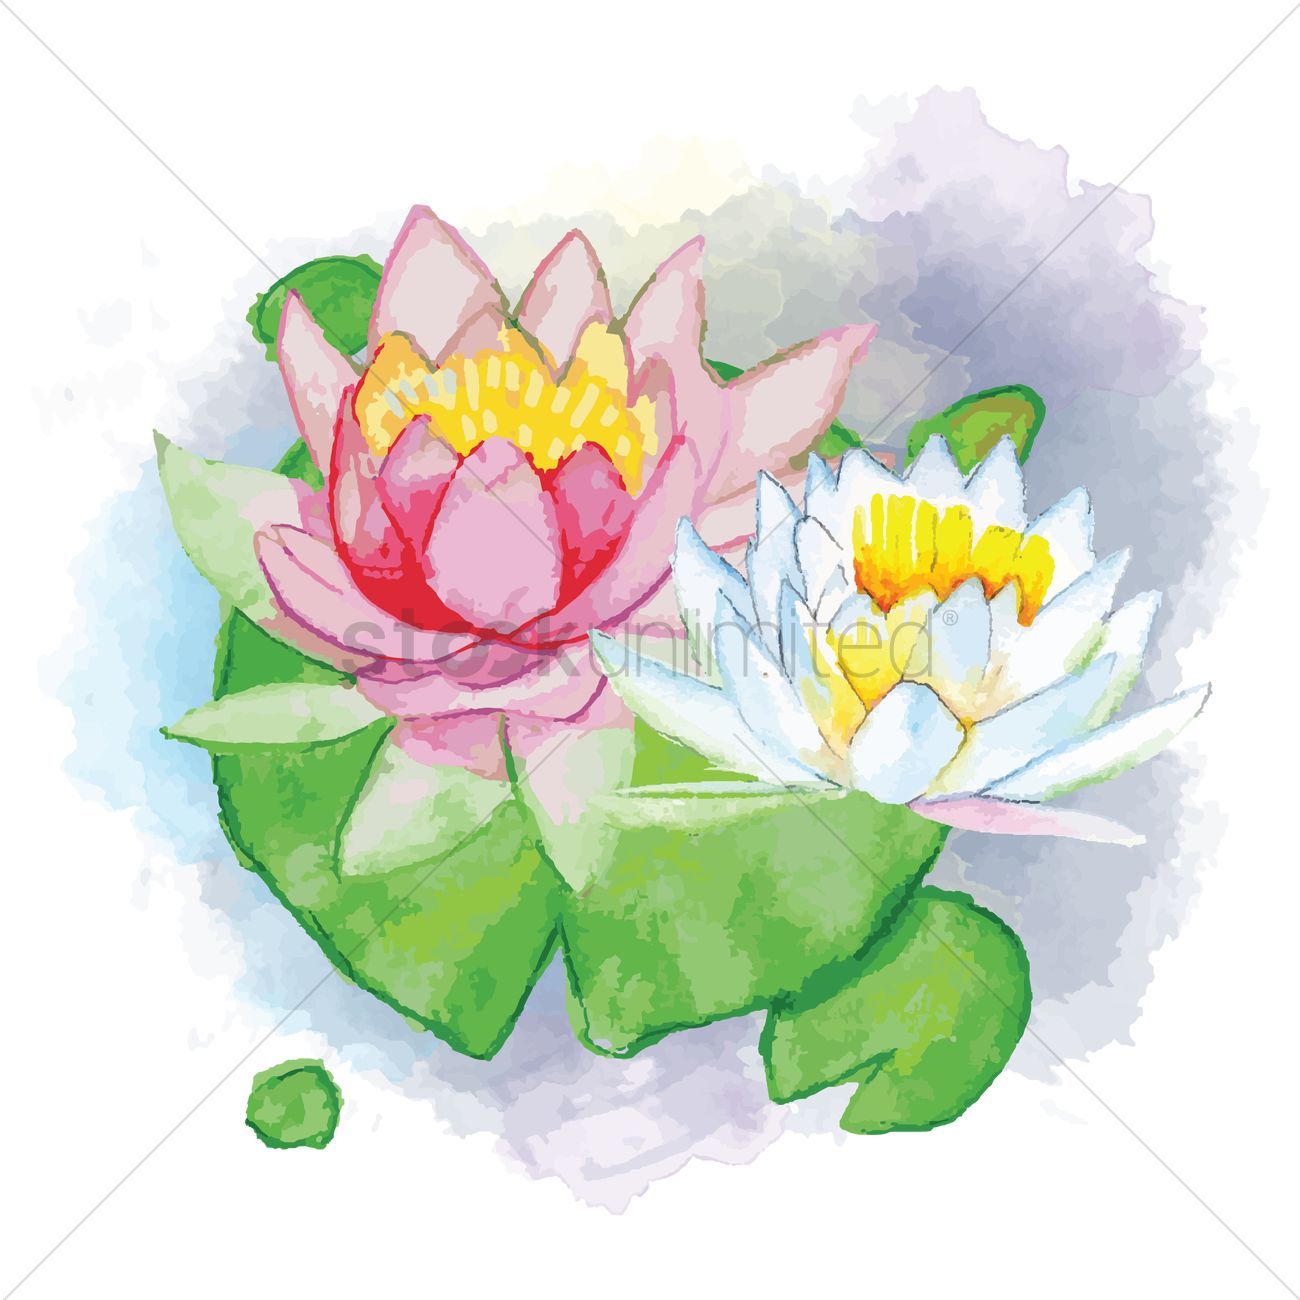 Lotus flower with leaf vector image 1869390 stockunlimited lotus flower with leaf vector graphic izmirmasajfo